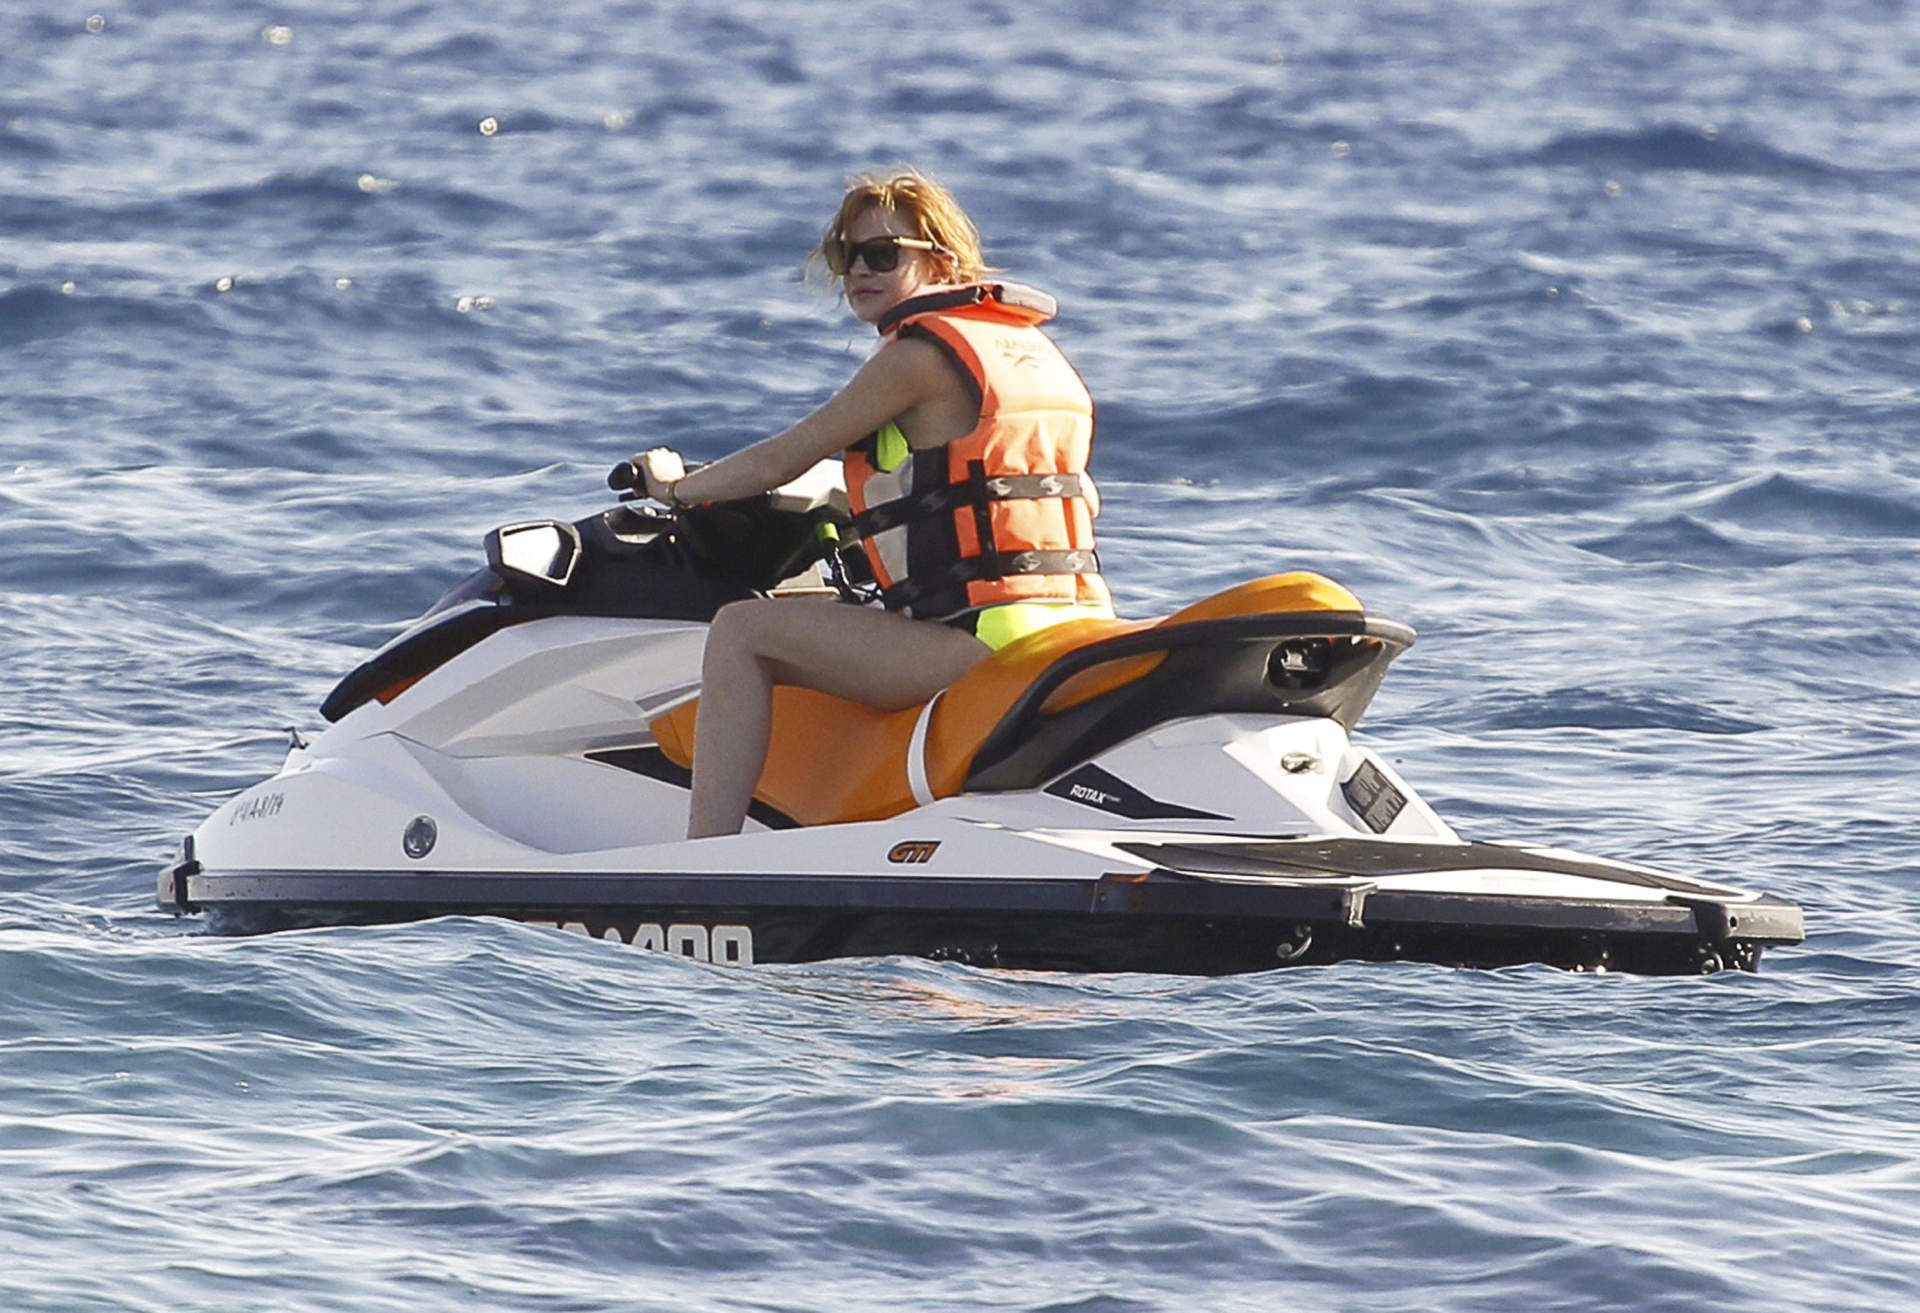 lindsay lohan goes jet skiing in ibiza 185843 photos the blemish. Black Bedroom Furniture Sets. Home Design Ideas